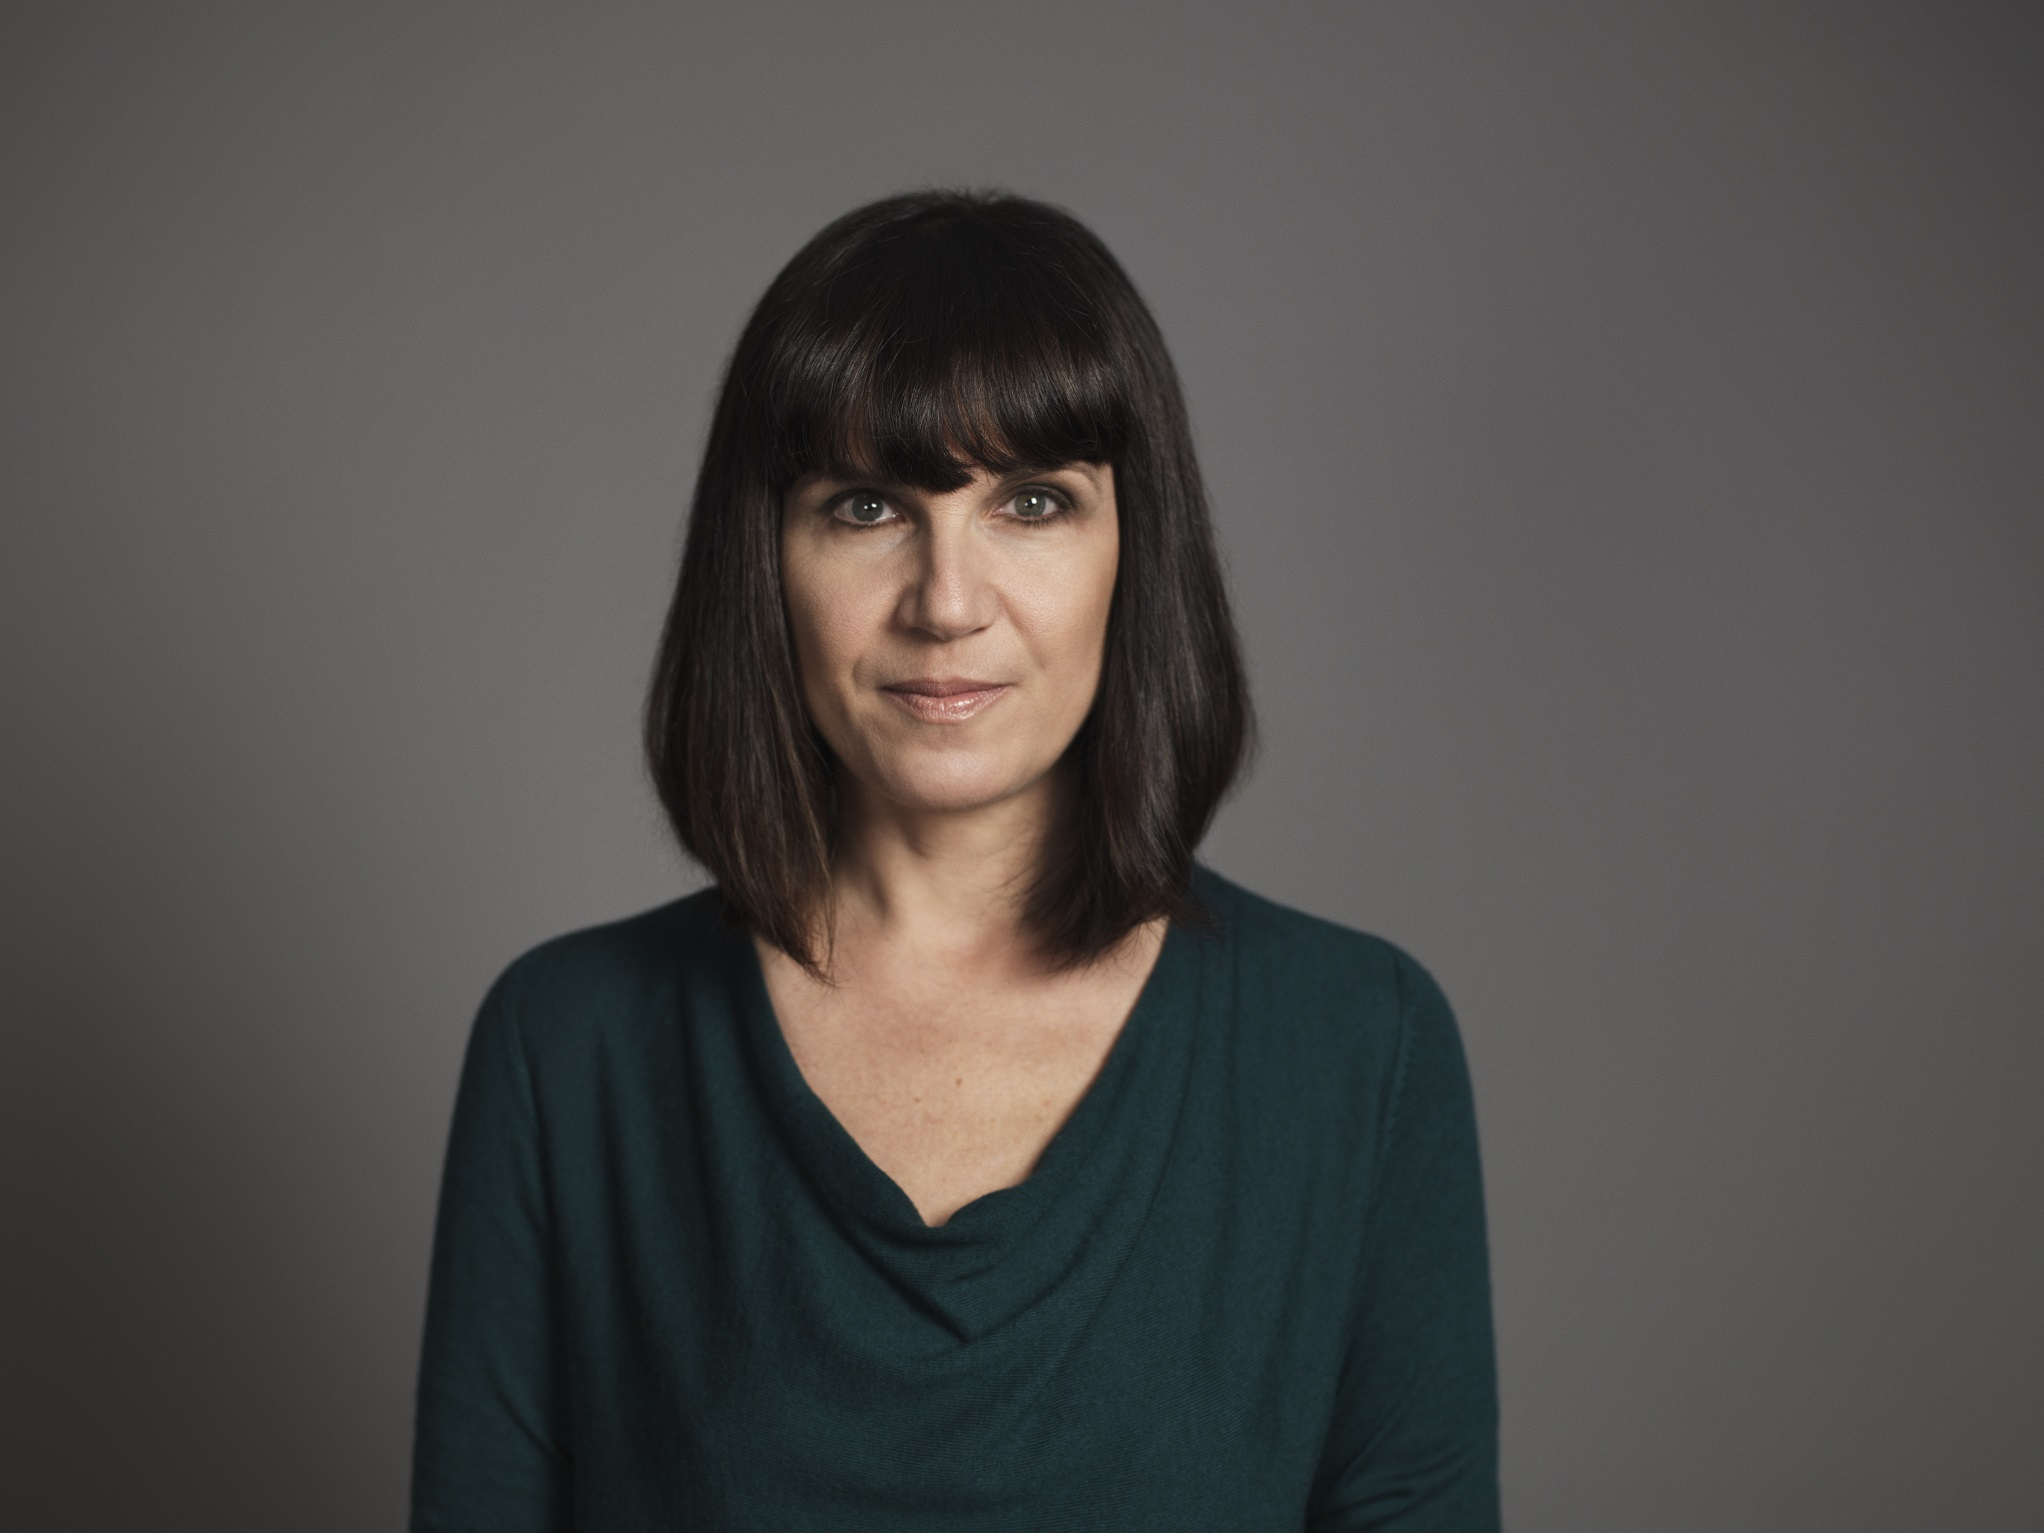 An interview with Catherine Mayer